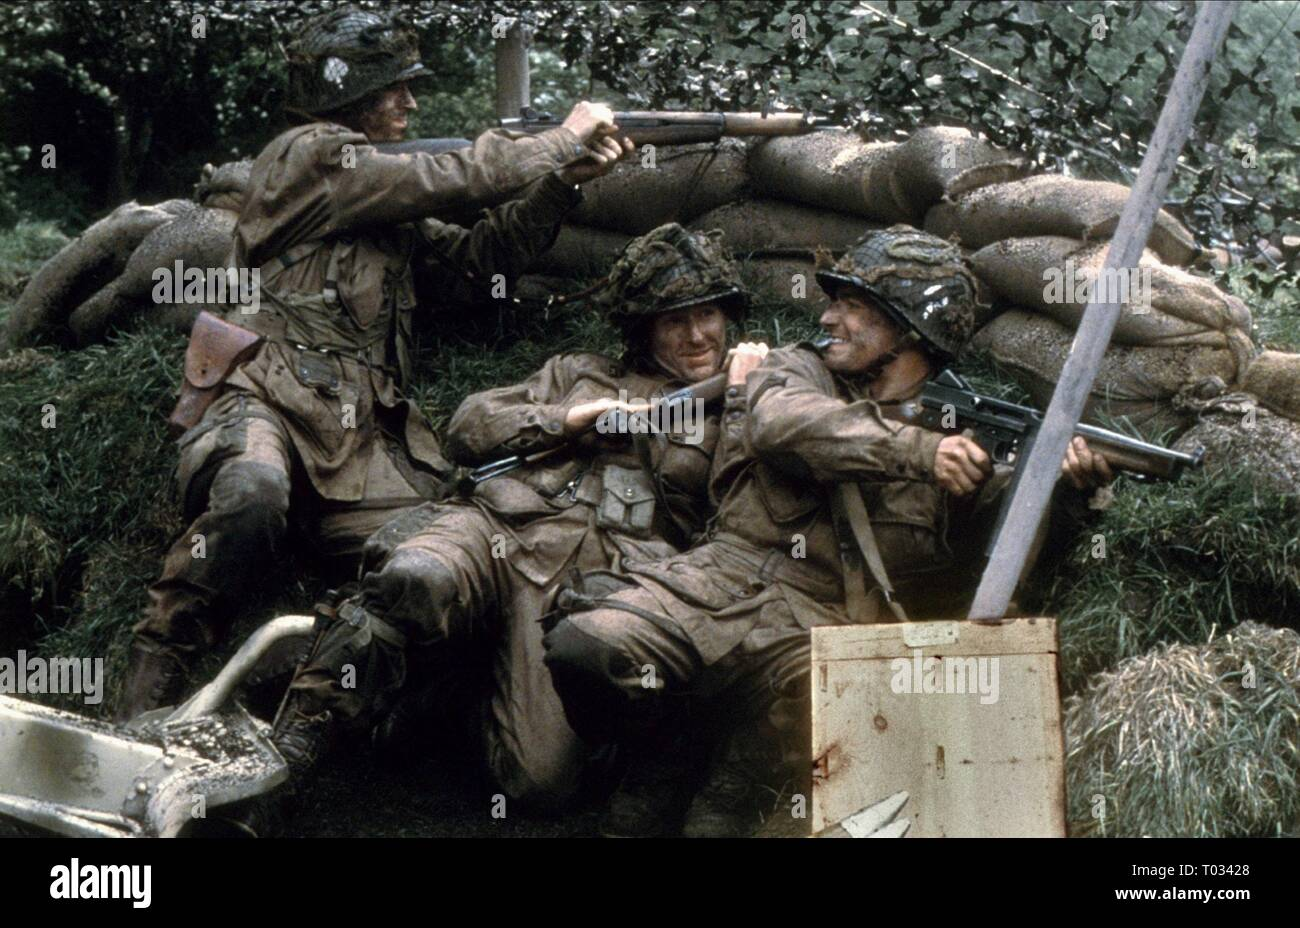 DAMIAN LEWIS, SCOTT GRIMES, JOHN HUGHES, BAND OF BROTHERS, 2001 - Stock Image